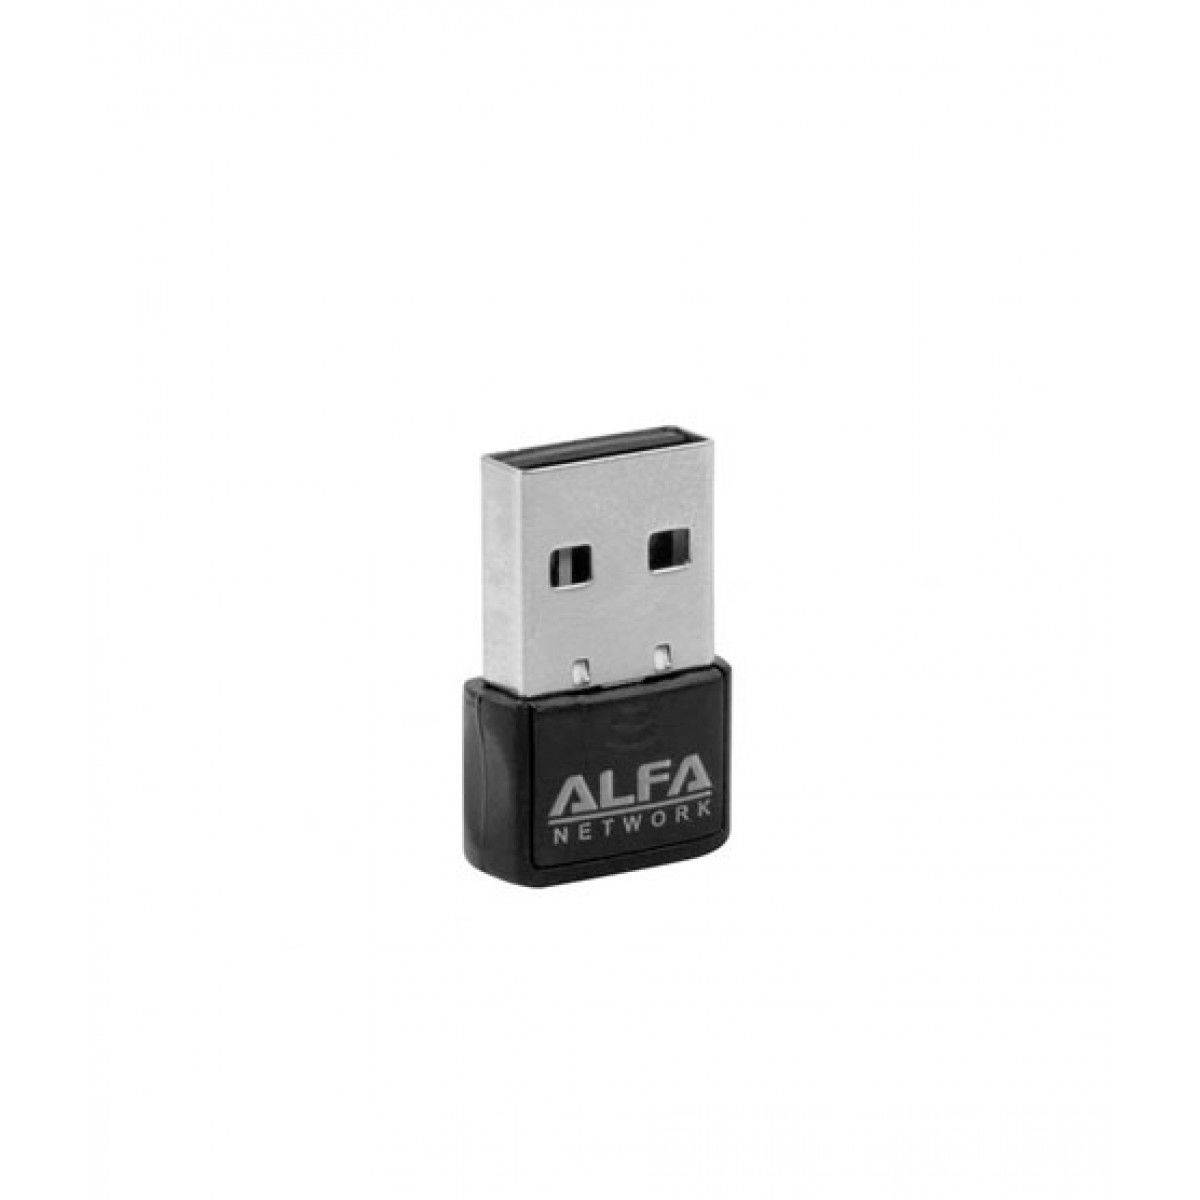 Alpha Wifi Wireless Network Adapter Dongle 802.11N 300Mbps